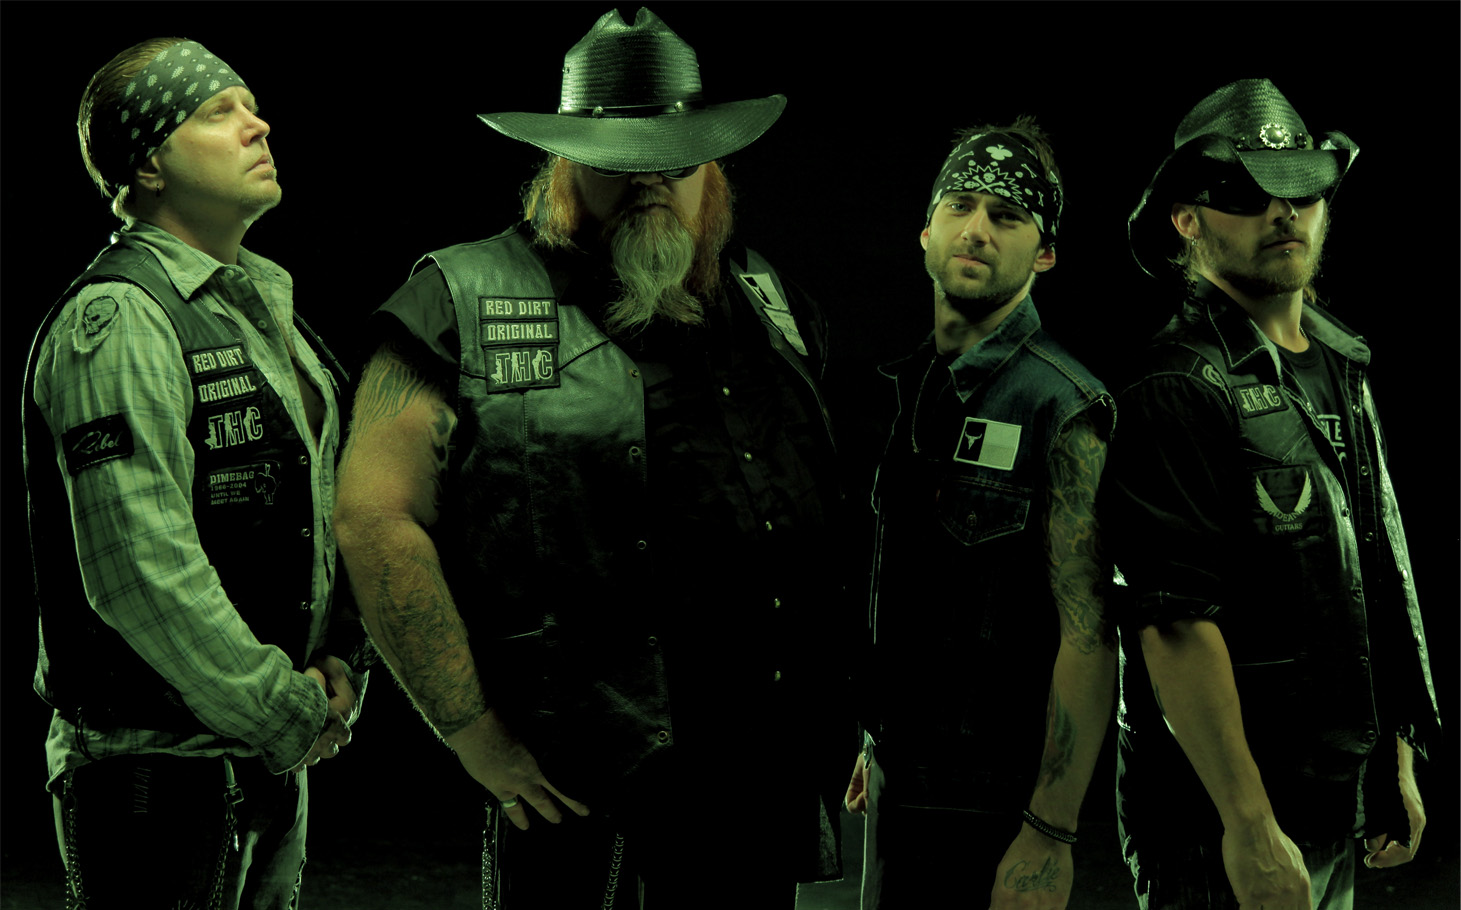 TexasHippieCoalition - Texas Hippie Coalition to take part in 'Highway Robbery' tour this summer